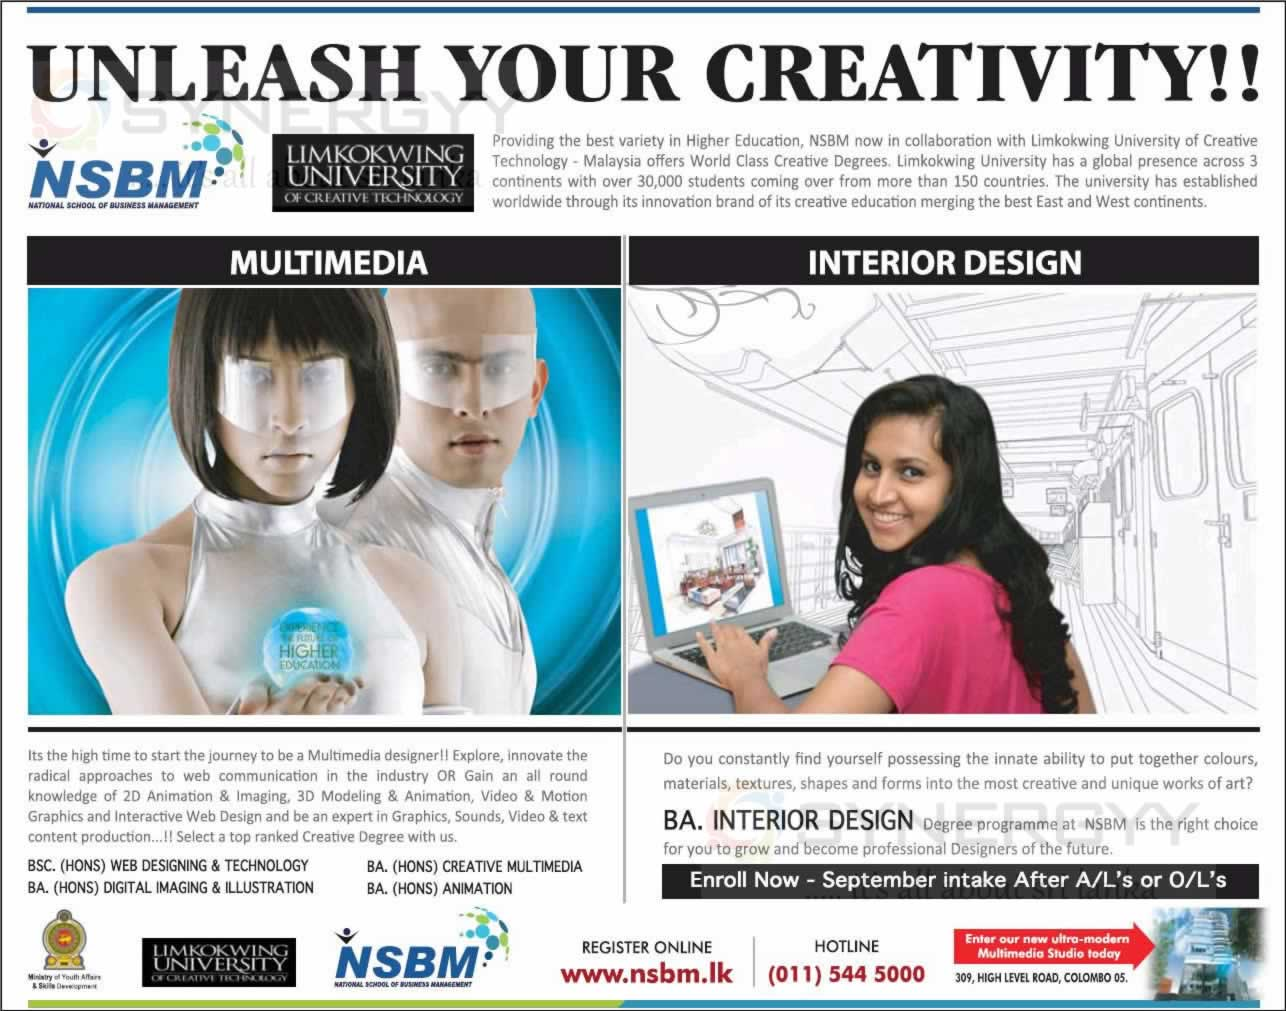 NSBM Degree Programme For Multimedia Interior Design September 2013 Intakes